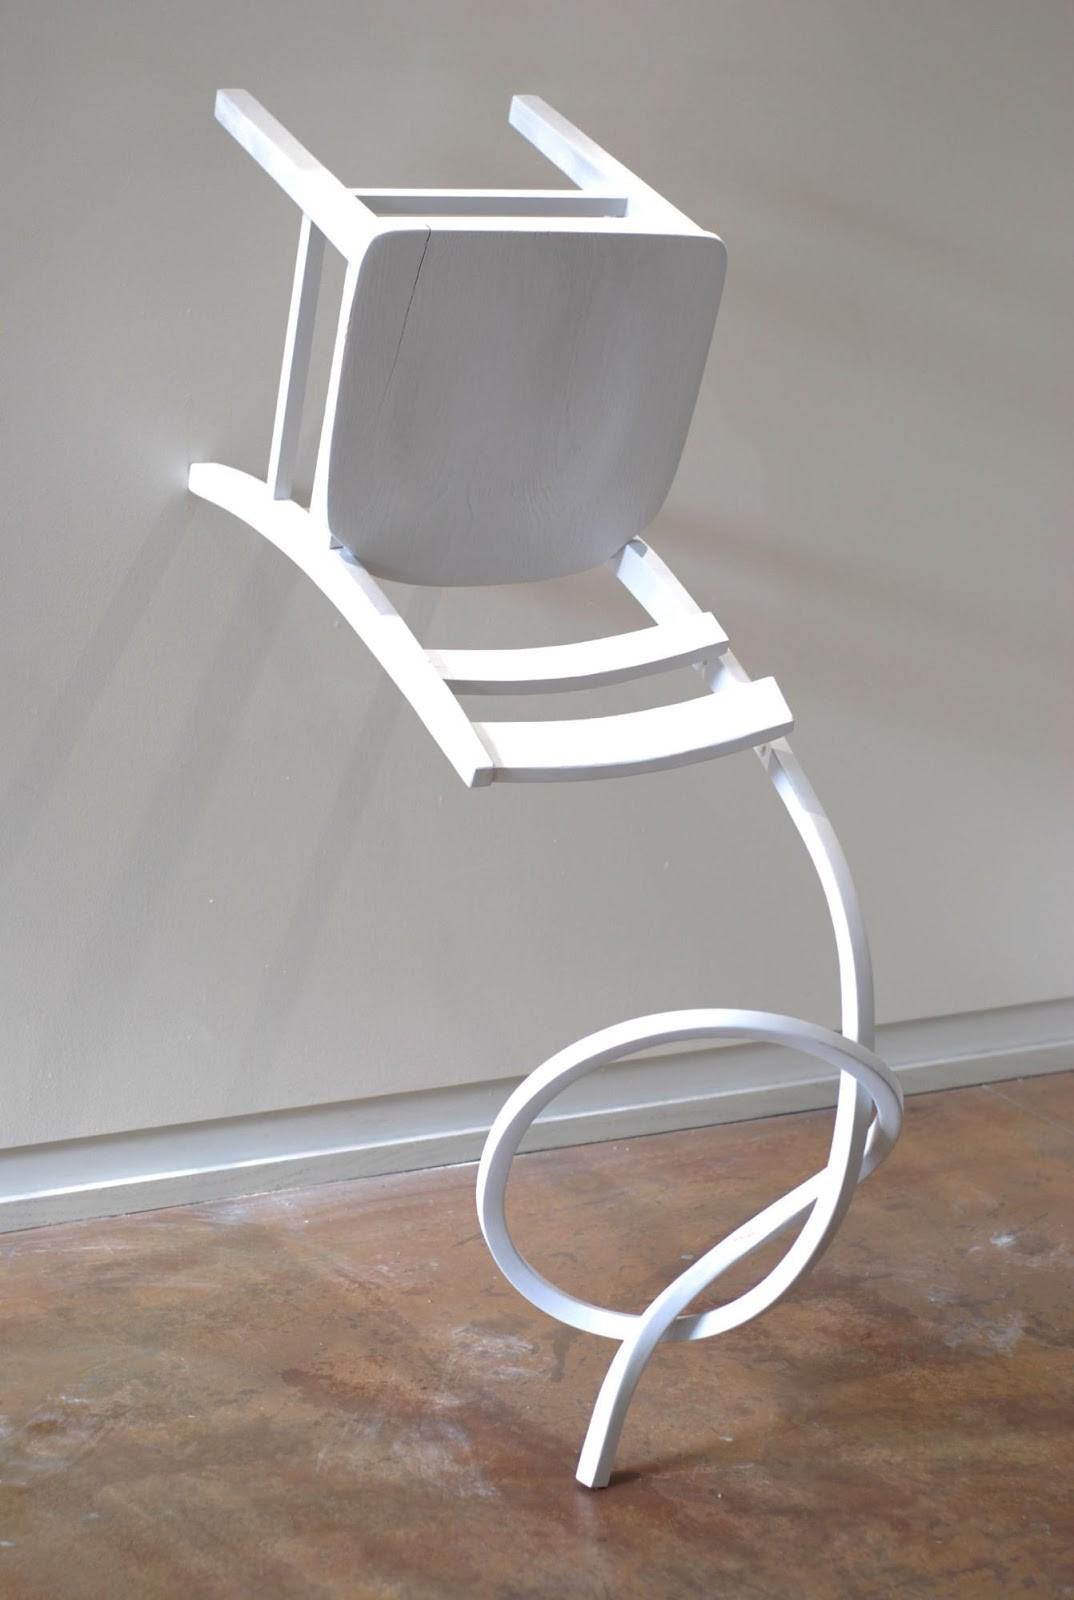 Photo of a chair.